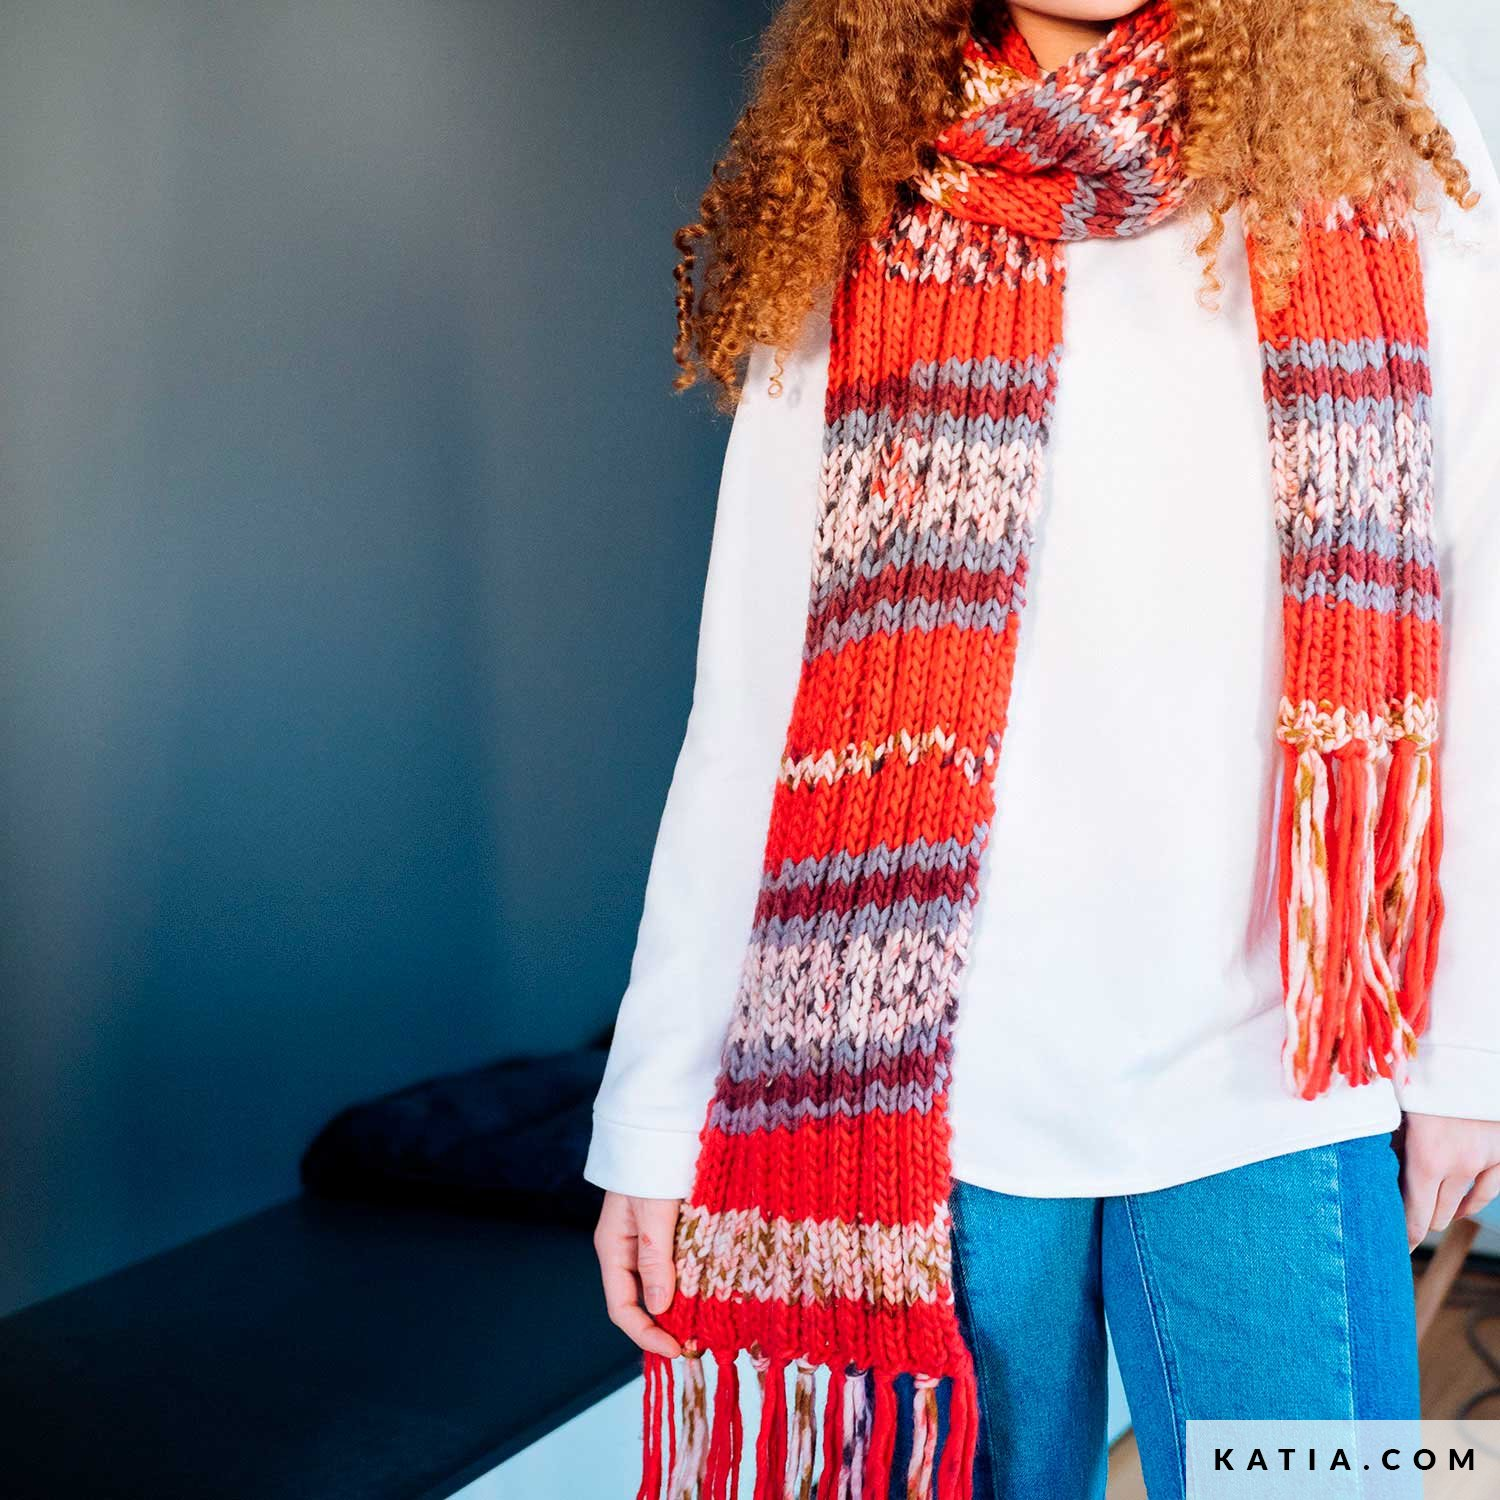 b09b8e5a5f0b4 pattern knit crochet woman scarf autumn winter katia 6103 34 g